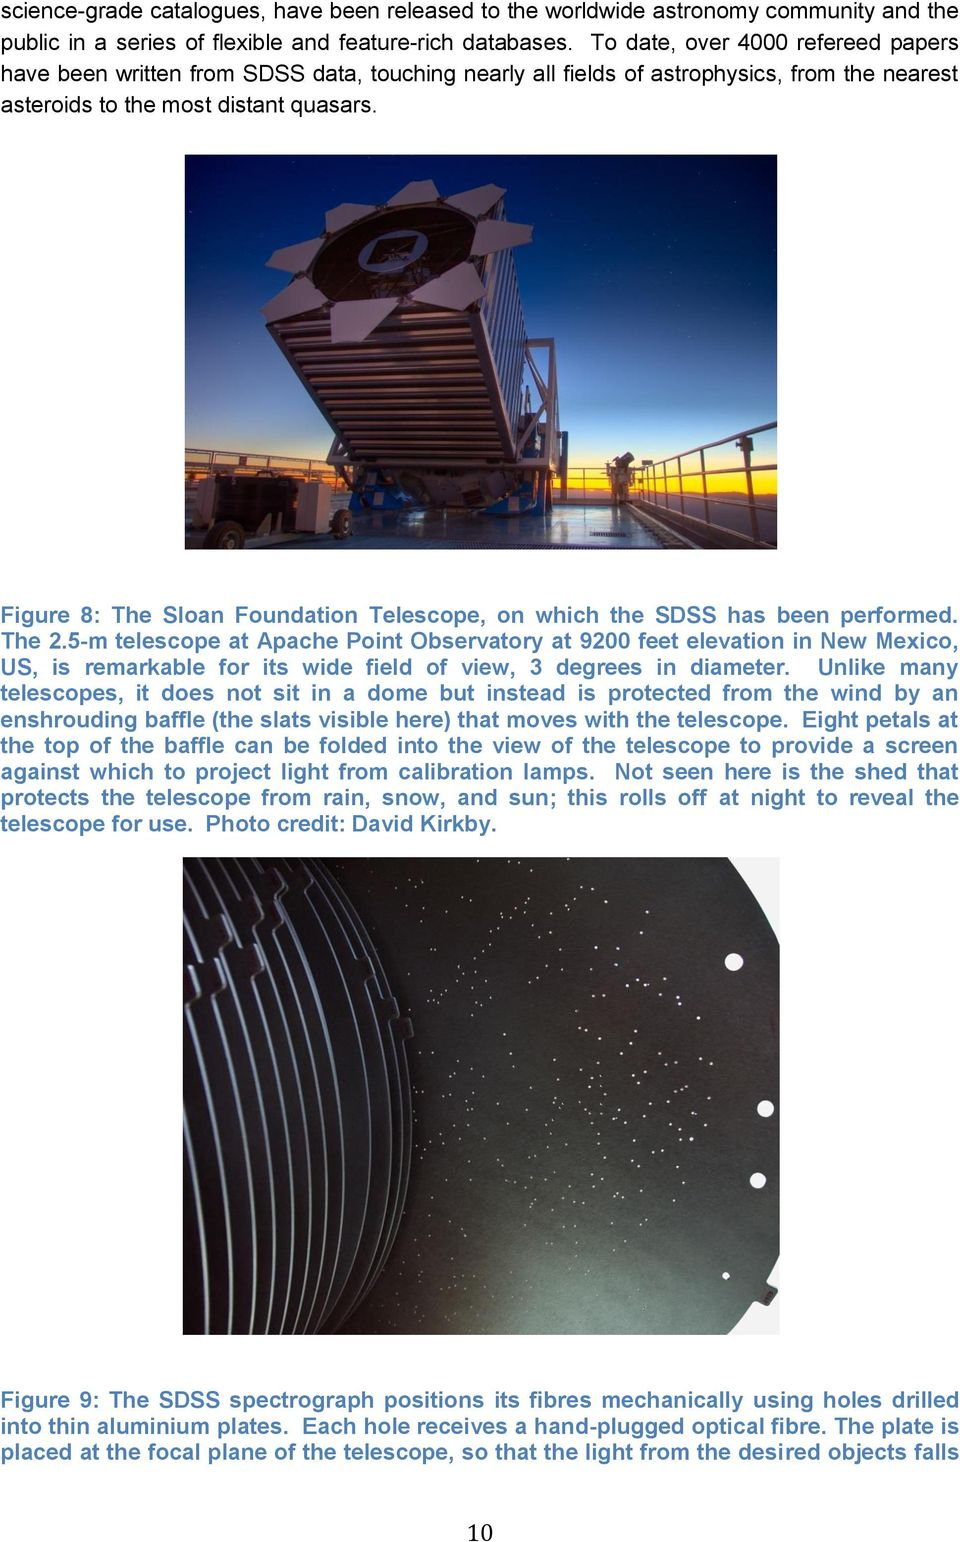 Figure 8: The Sloan Foundation Telescope, on which the SDSS has been performed. The 2.